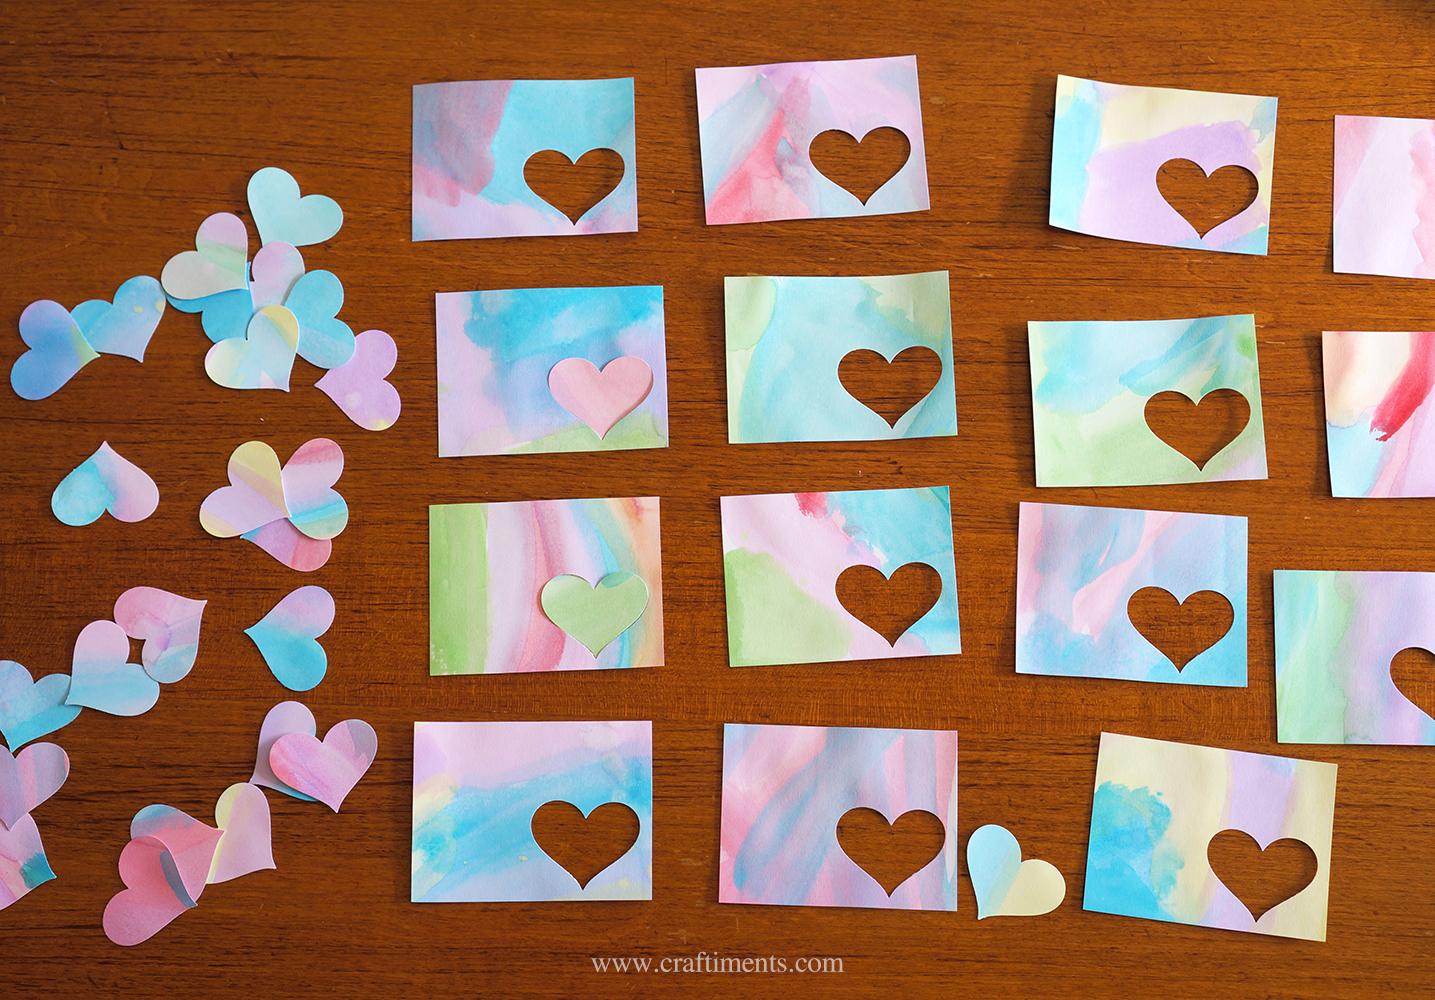 Mix and match heart shapes